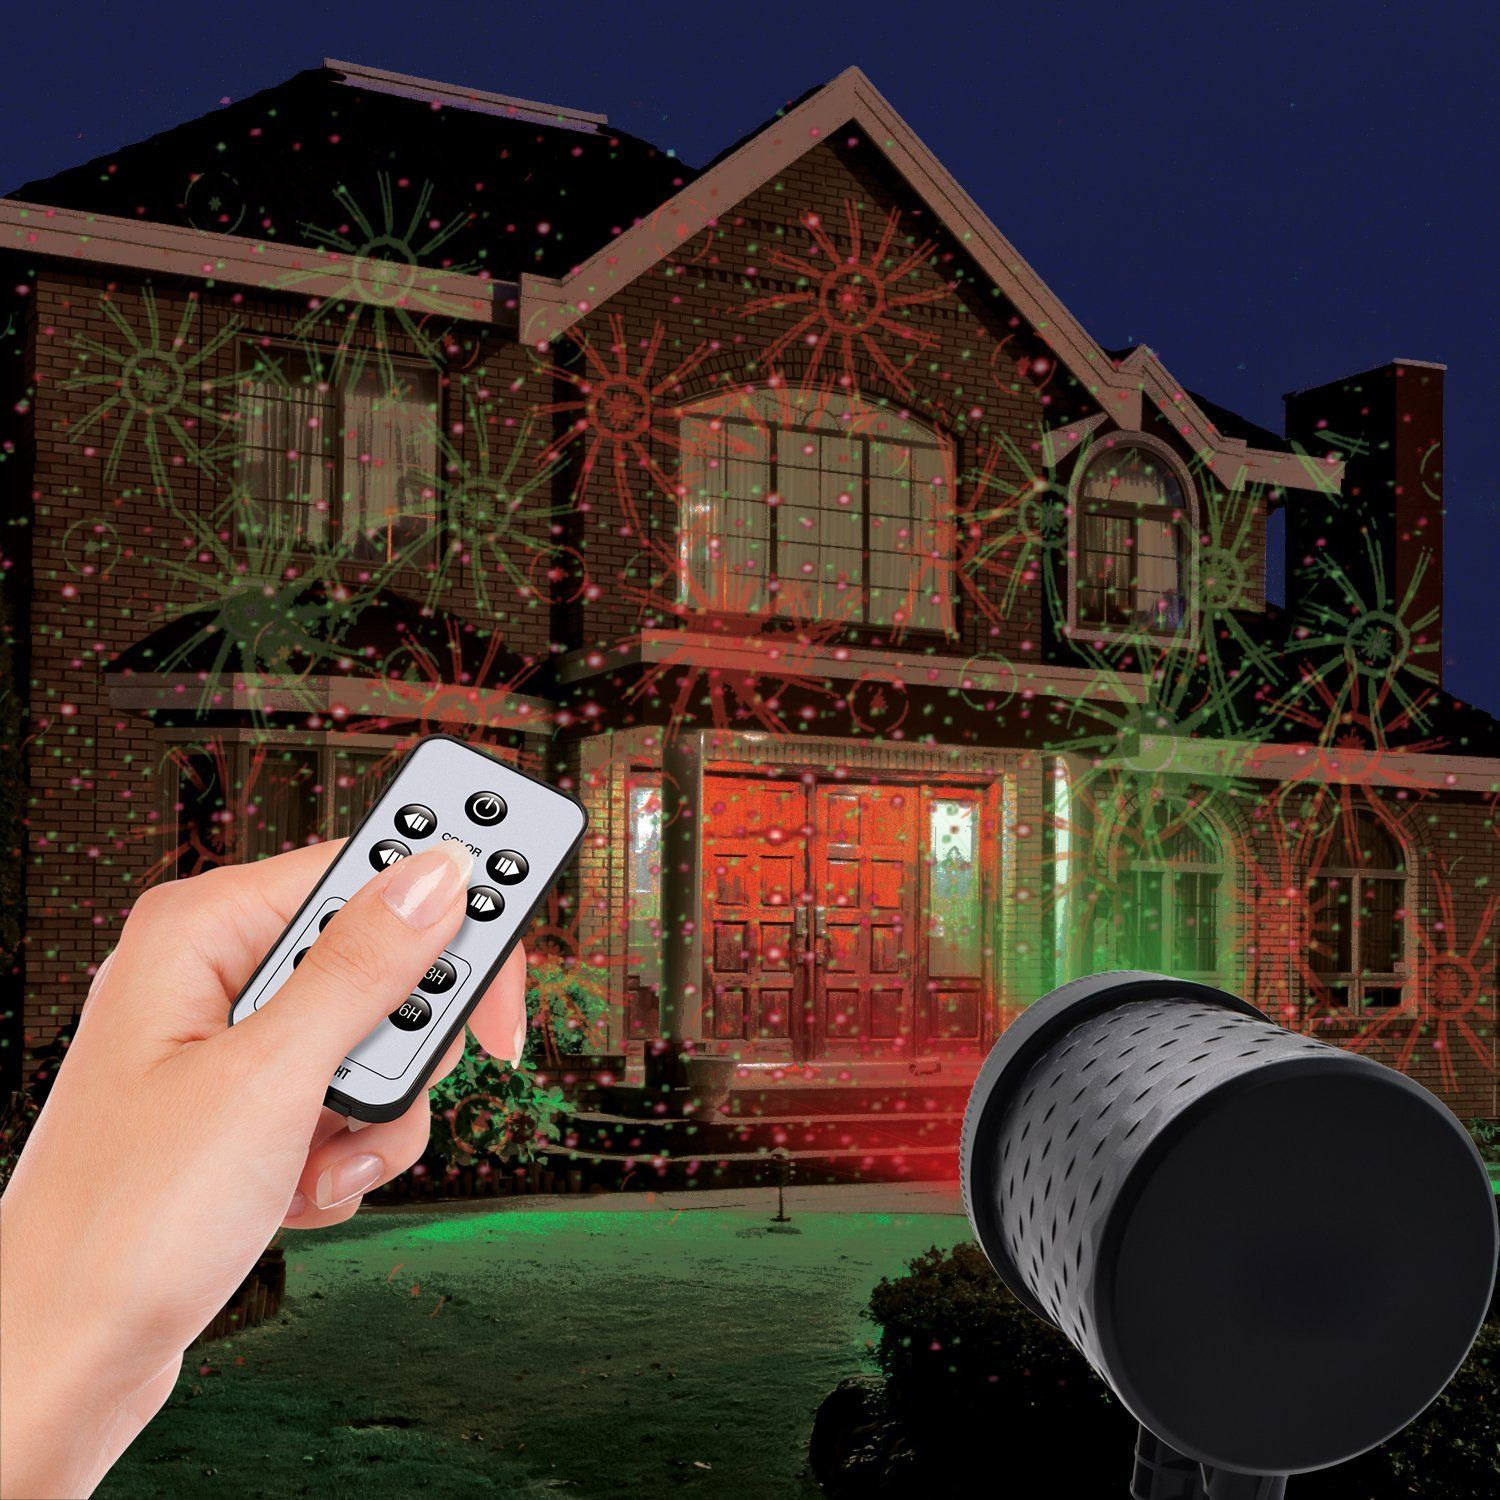 Sky Delight Holiday Waterproof Outdoor Laser Light 12 Pattern Christmas Projector Moving Lights These Be Christmas Projector Laser Lights Waterproof Outdoor